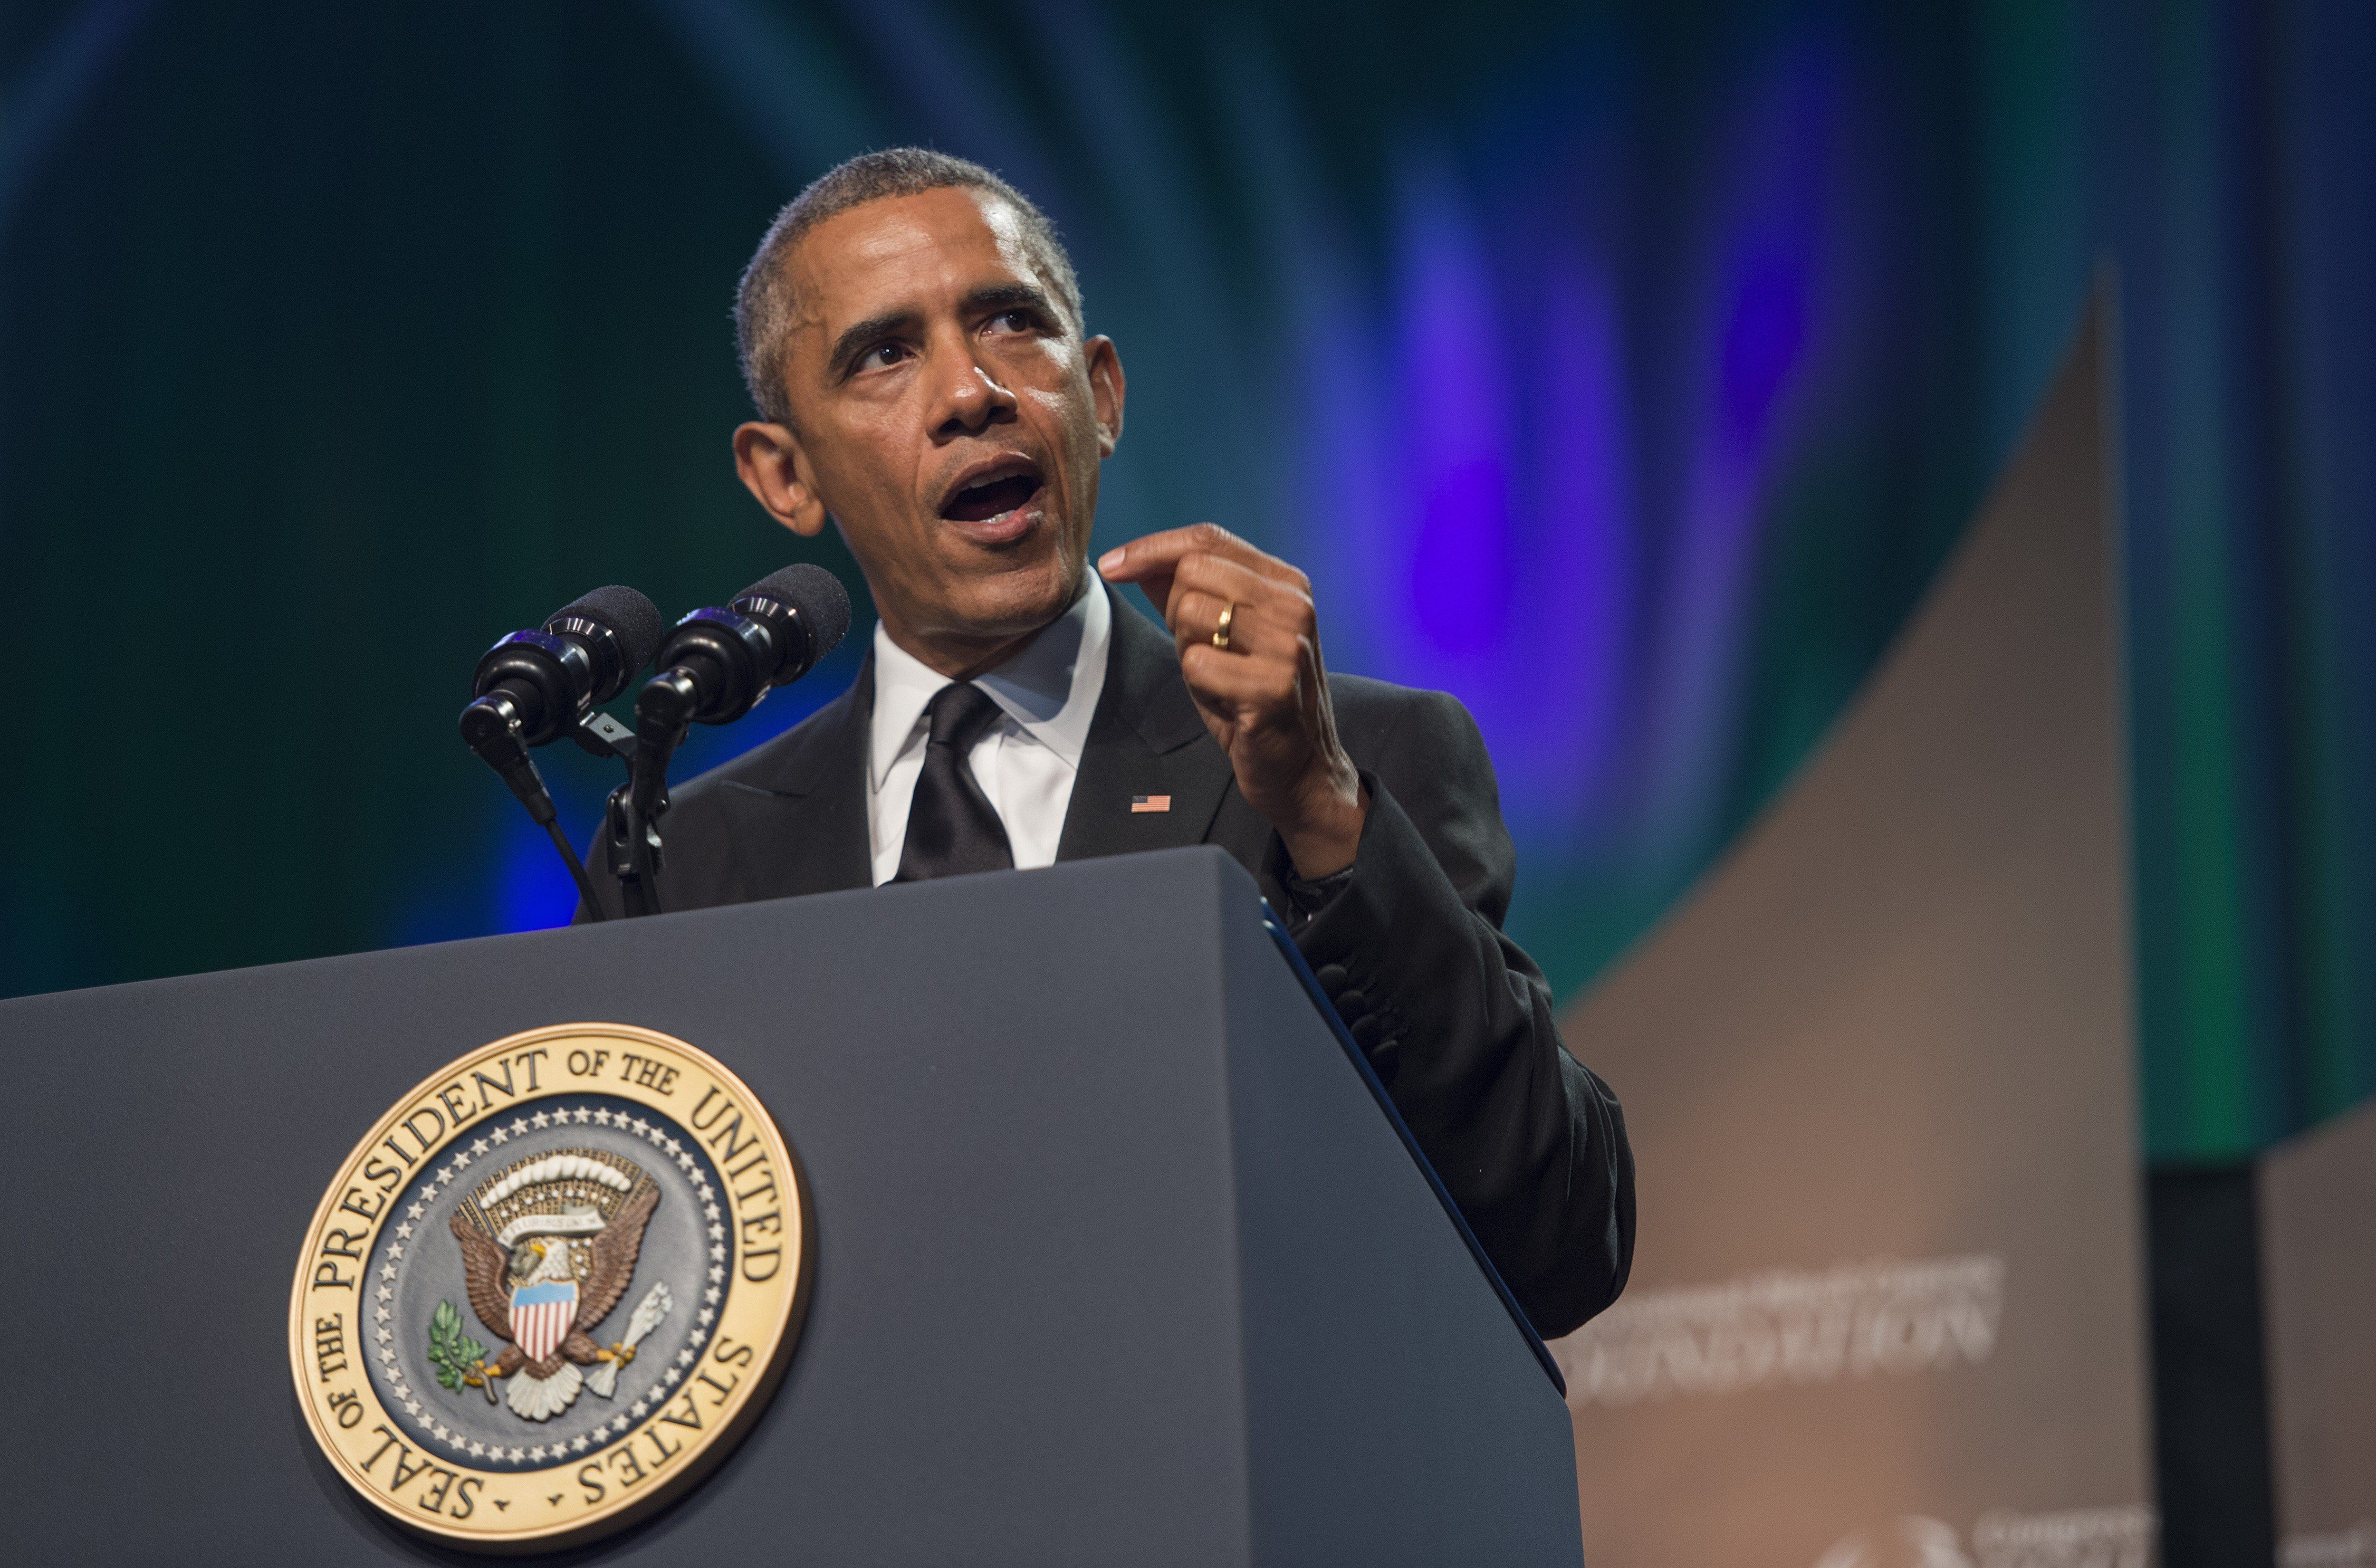 US President Barack Obama addresses the Congressional Black Caucus (CBC) Foundation's 45th Annual Legislative Conference in Washington, DC, on September 19, 2015.         AFP PHOTO/ JIM WATSON        (Photo credit should read JIM WATSON/AFP/Getty Images)